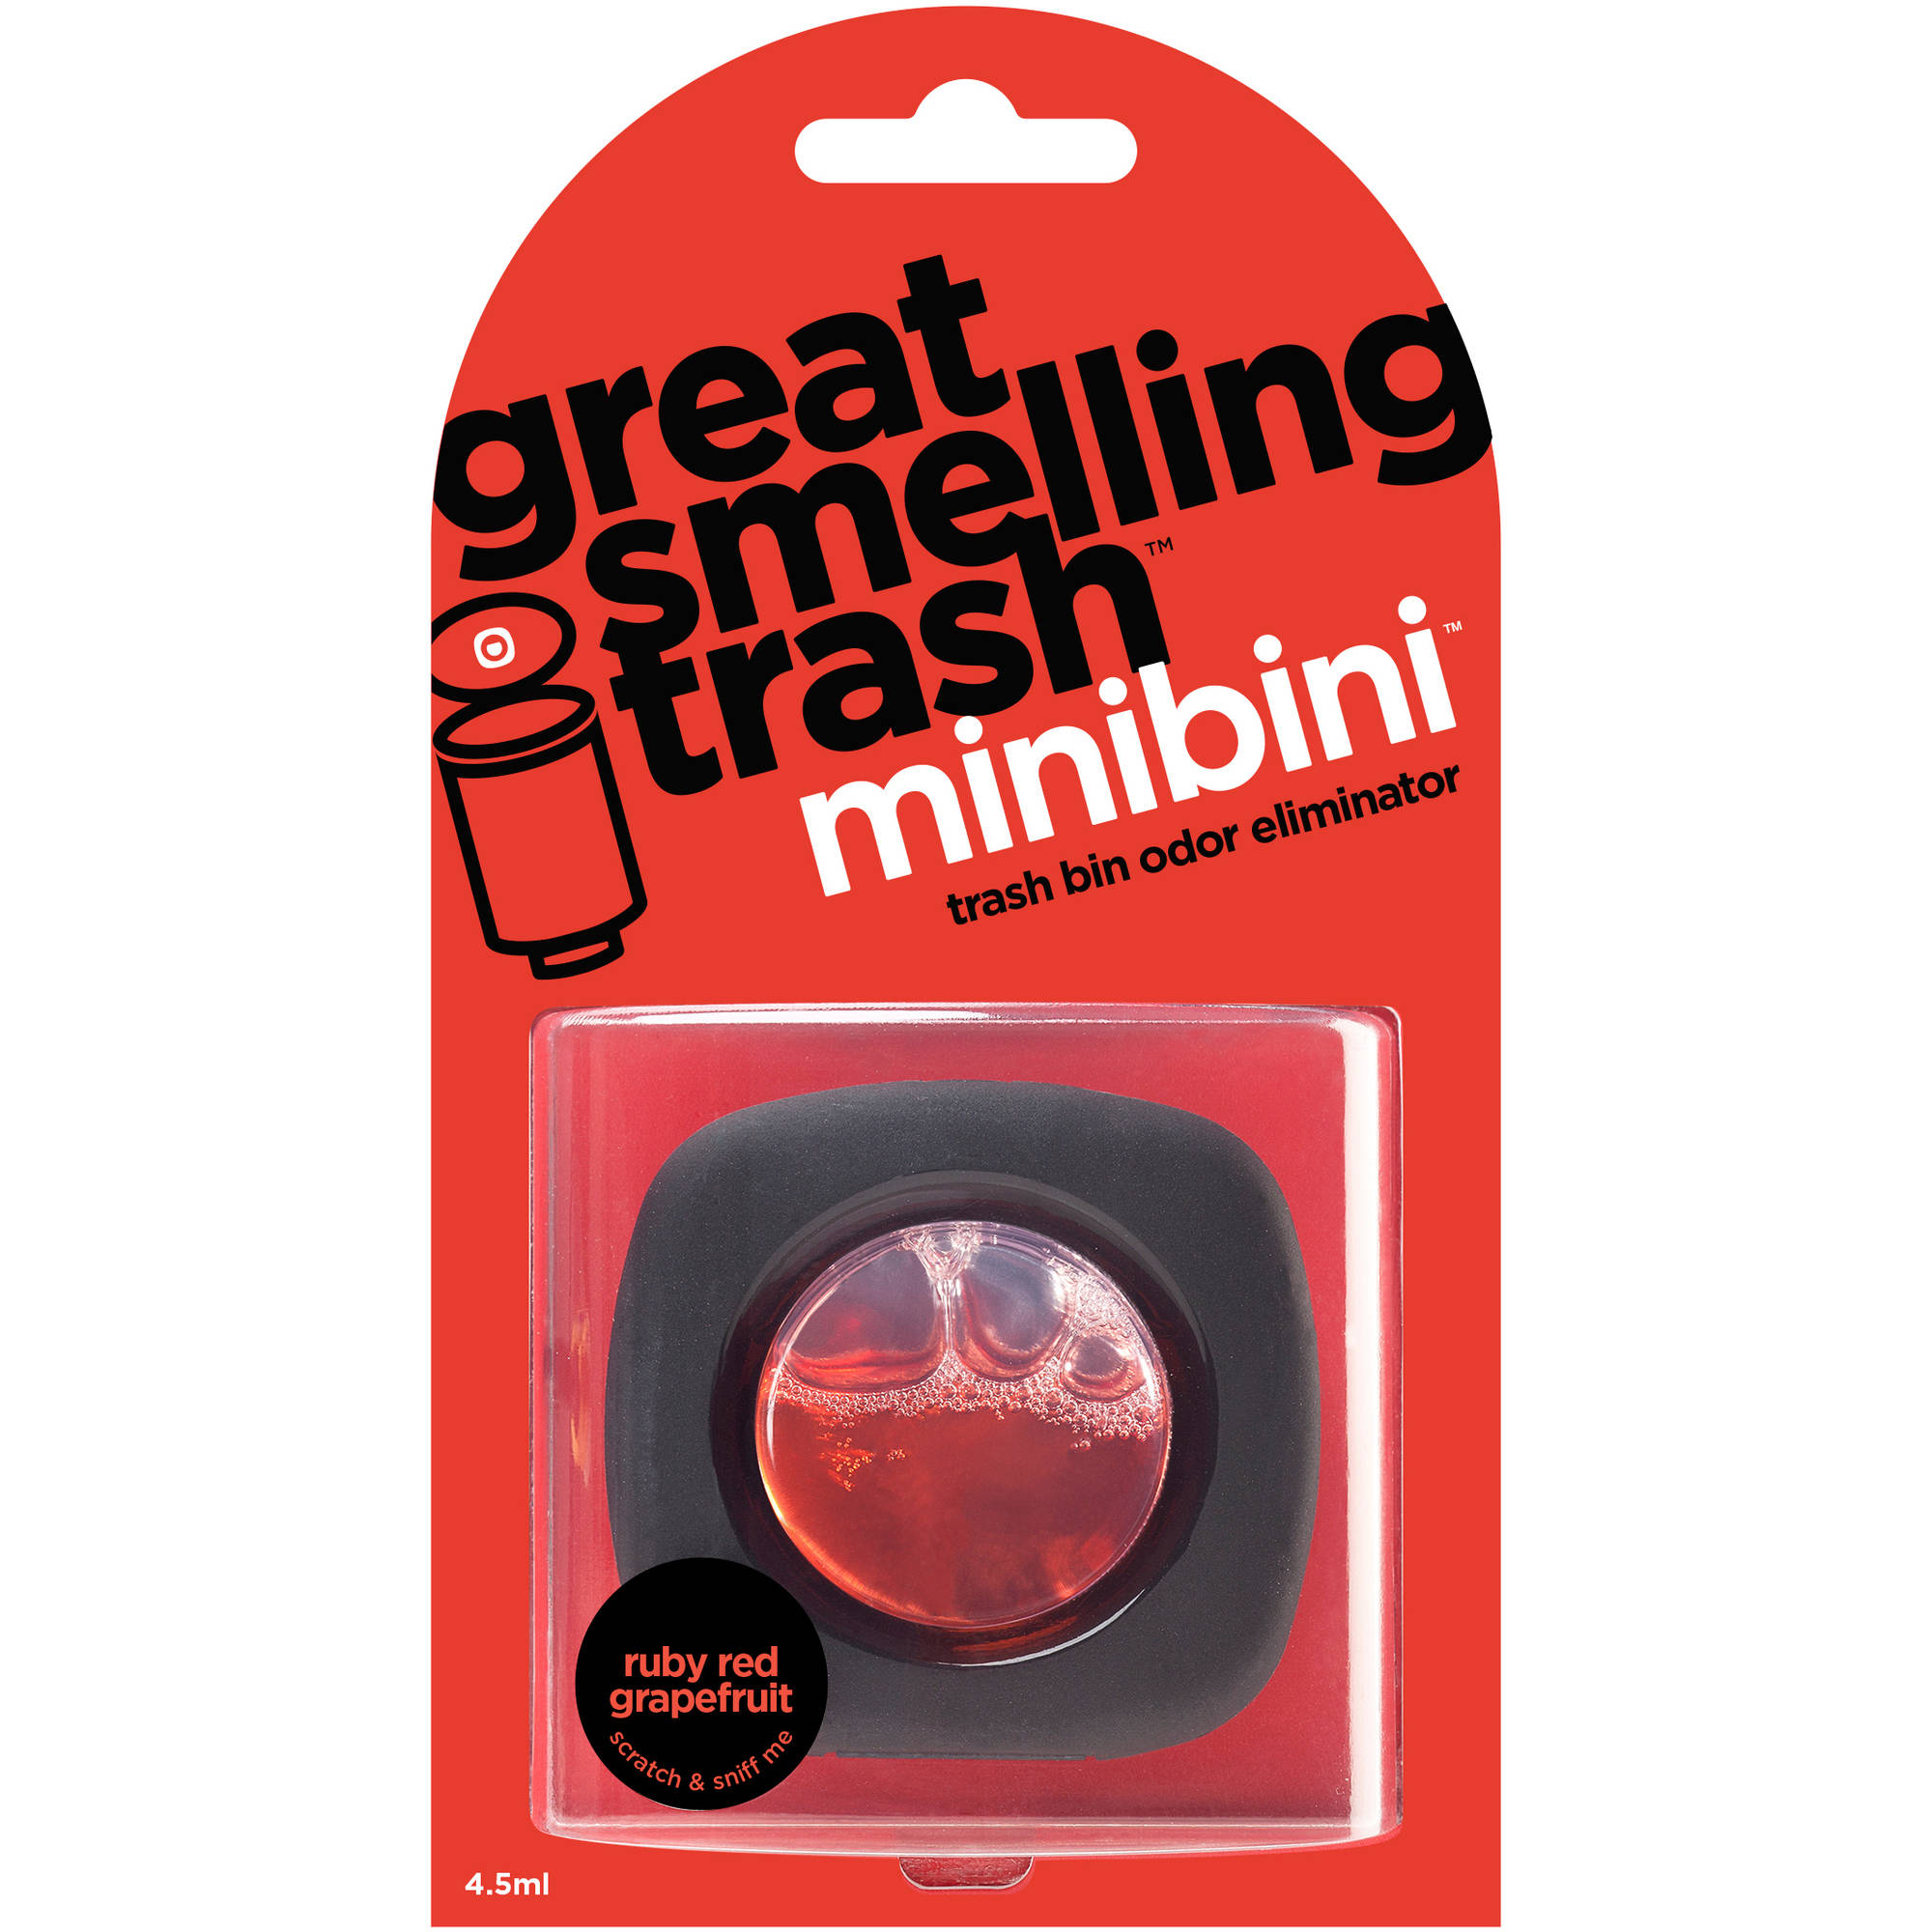 Great Smelling Trash Minibini Ruby Red Grapefruit Trash Bin Odor Eliminator Refill, 4.5mL